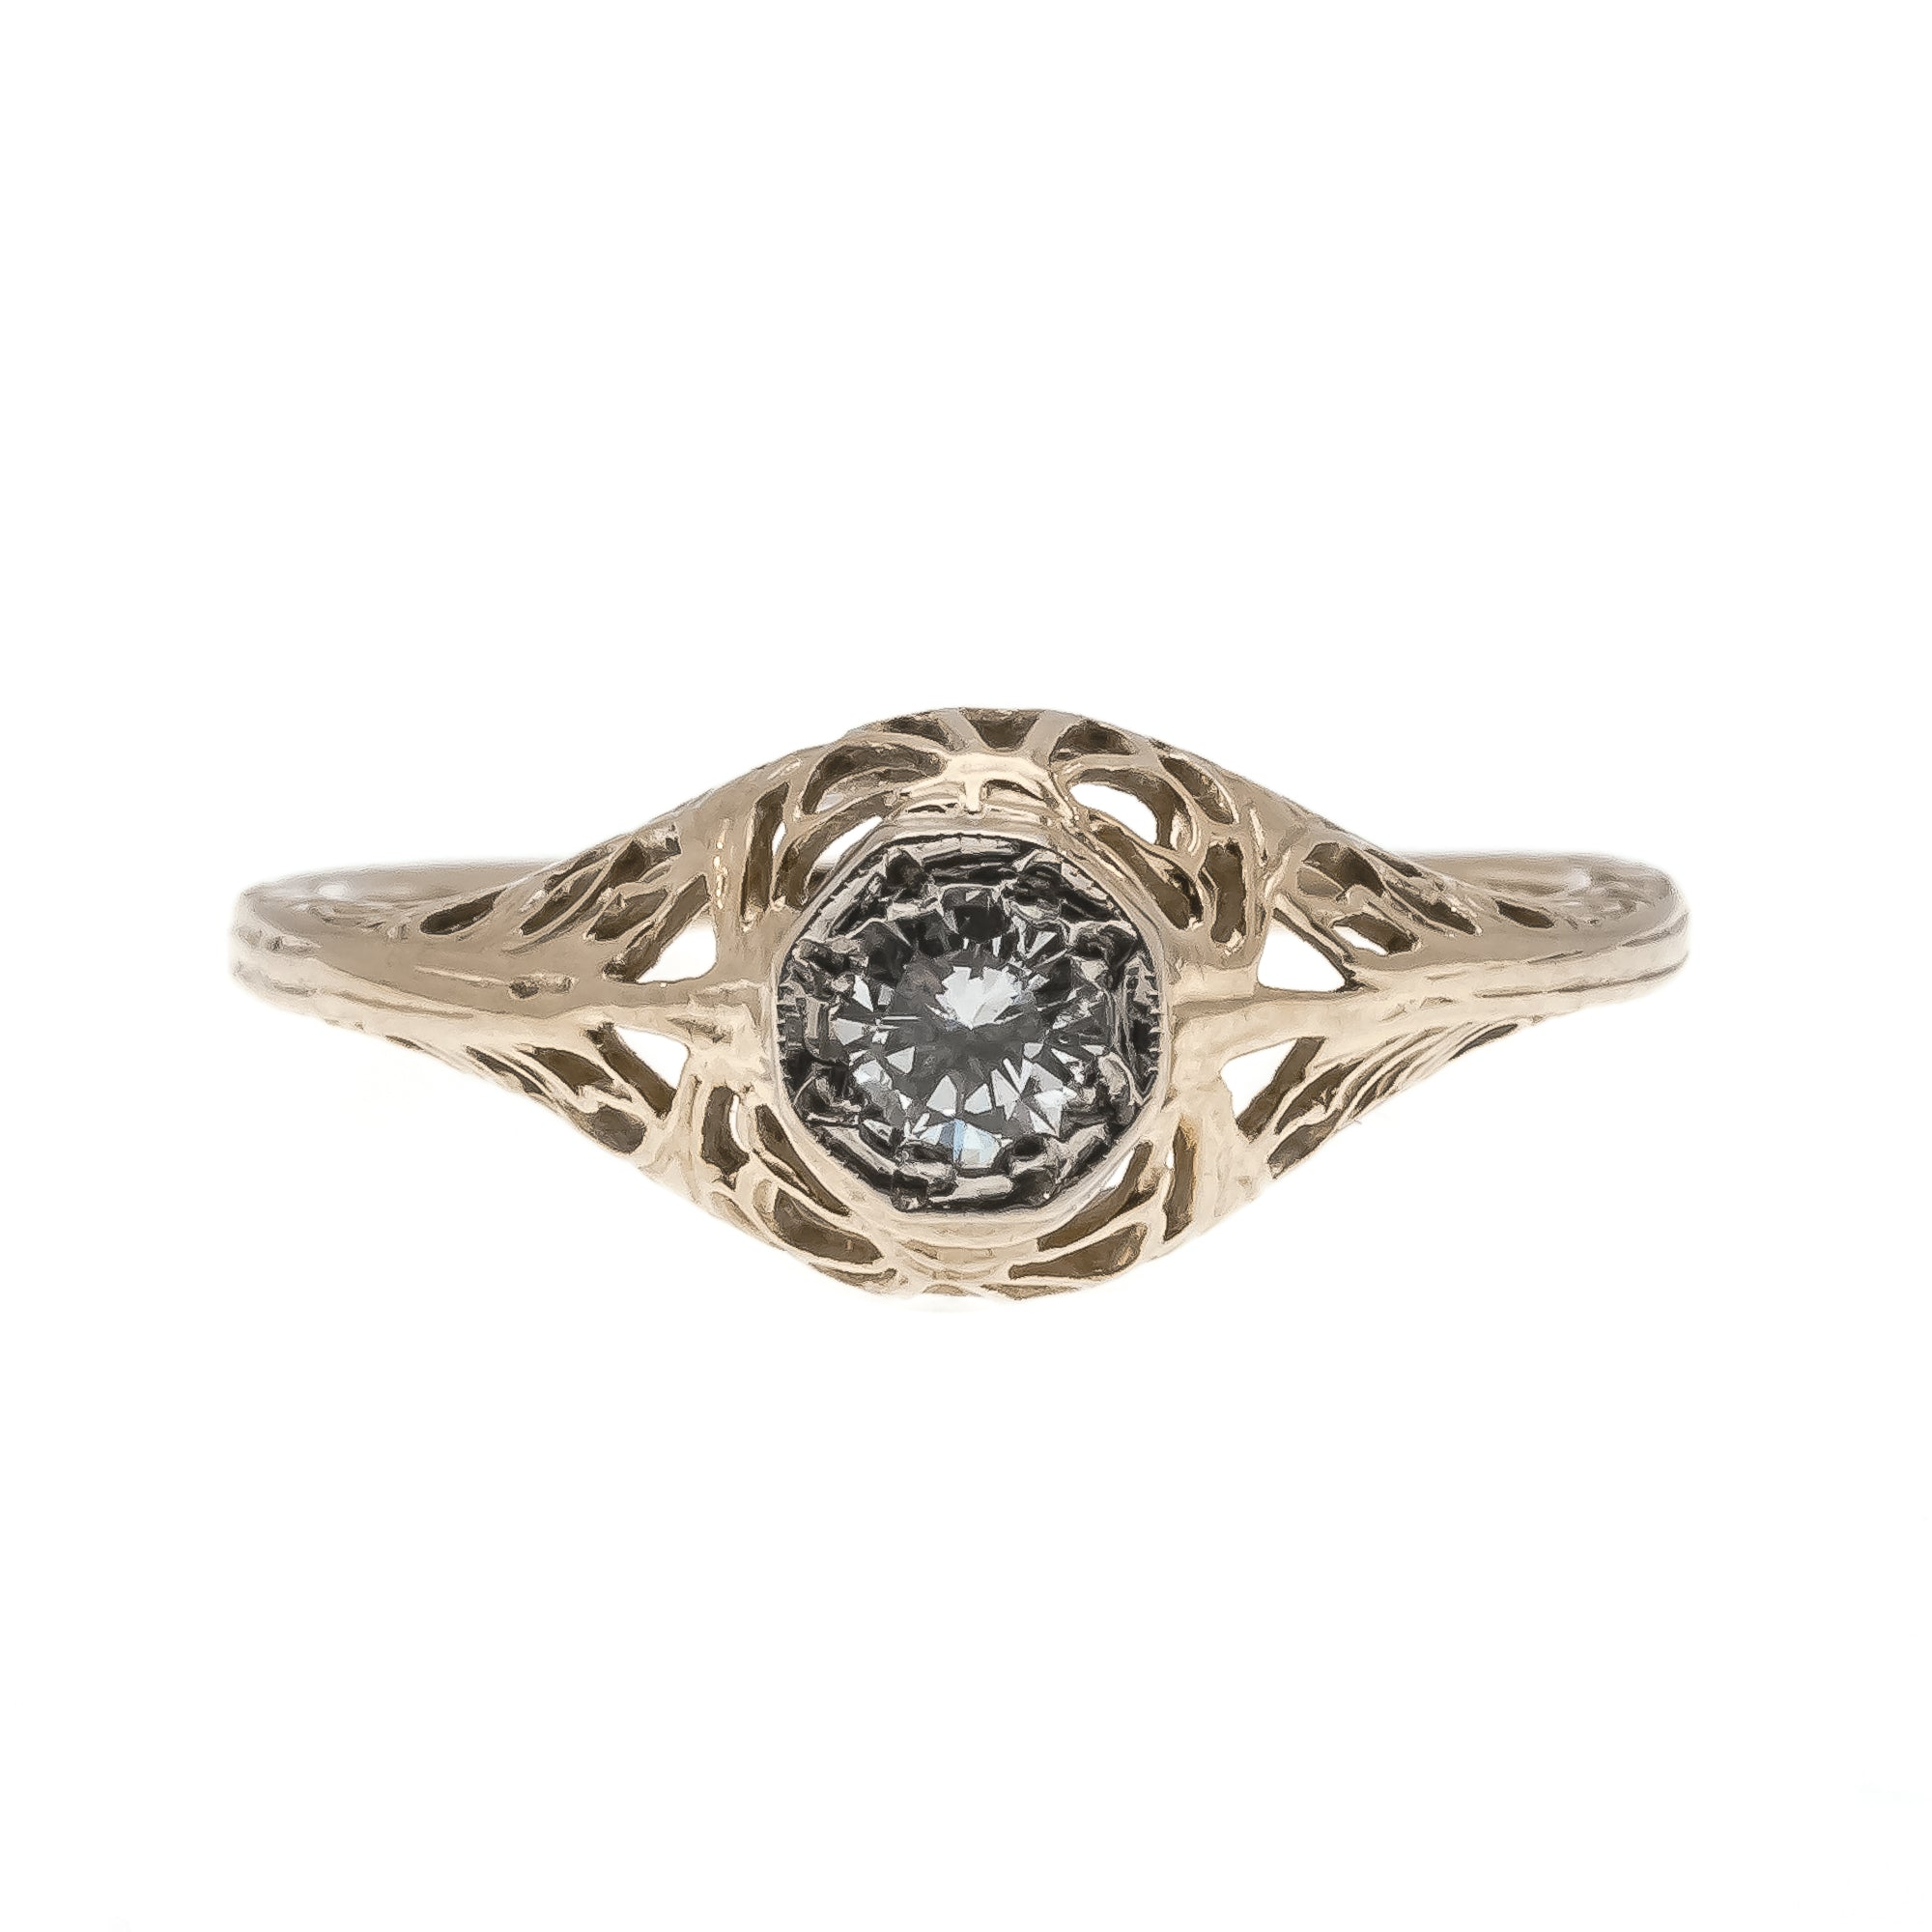 Lace Of Gold - Art Deco 14K Diamond Solitaire Filigree Ring (ADR169)